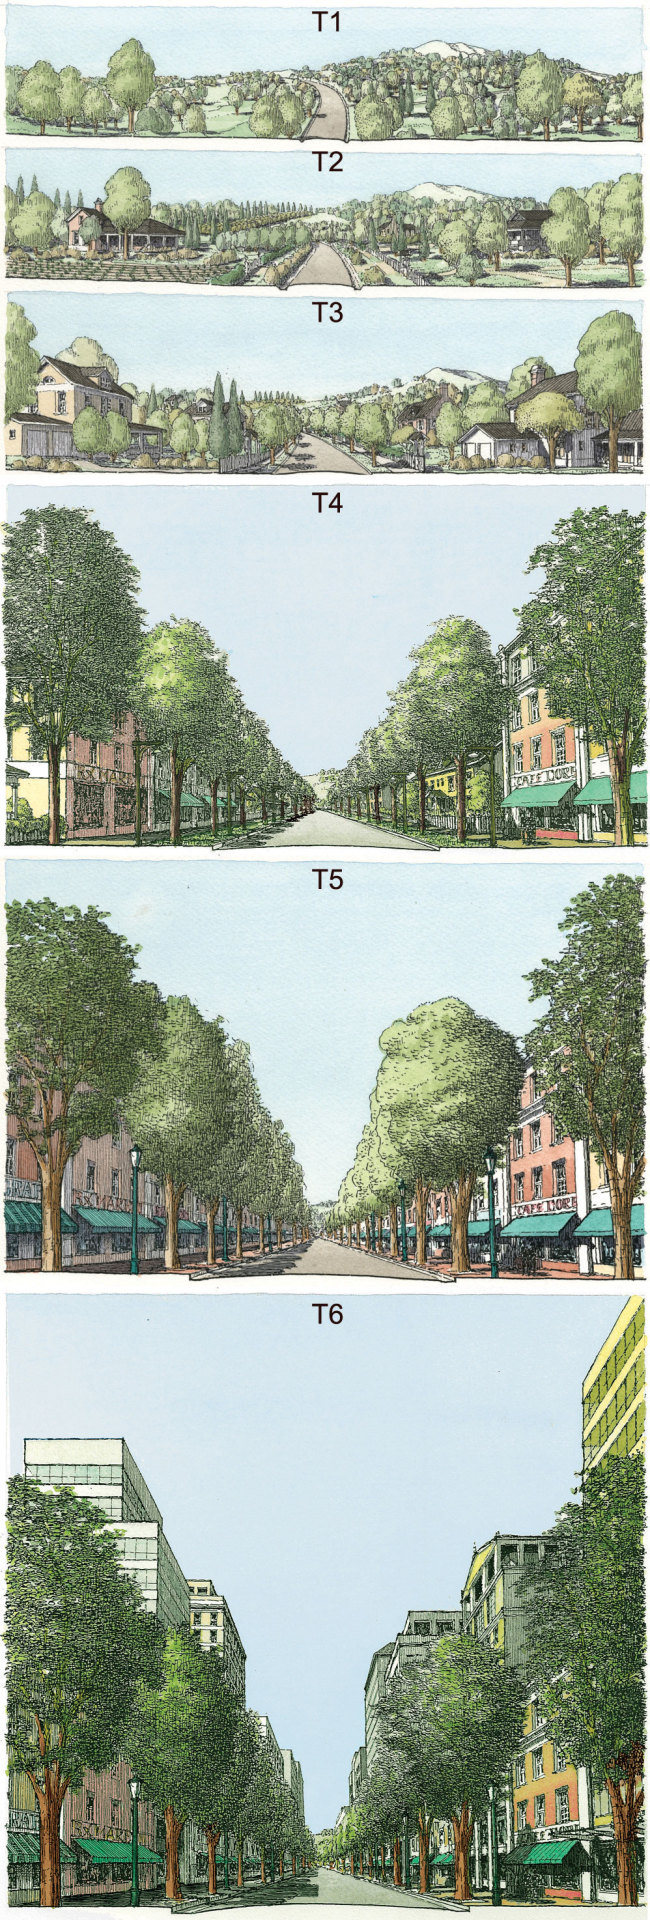 urbanxdesign:  Successional urbanism: the six Transect zones and the successional nature of urbanism. Image by Eusebio Azcue, courtesy Duany Plater-Zyberk & Company. Source: http://terrain.org/2013/interview/andres-duany/